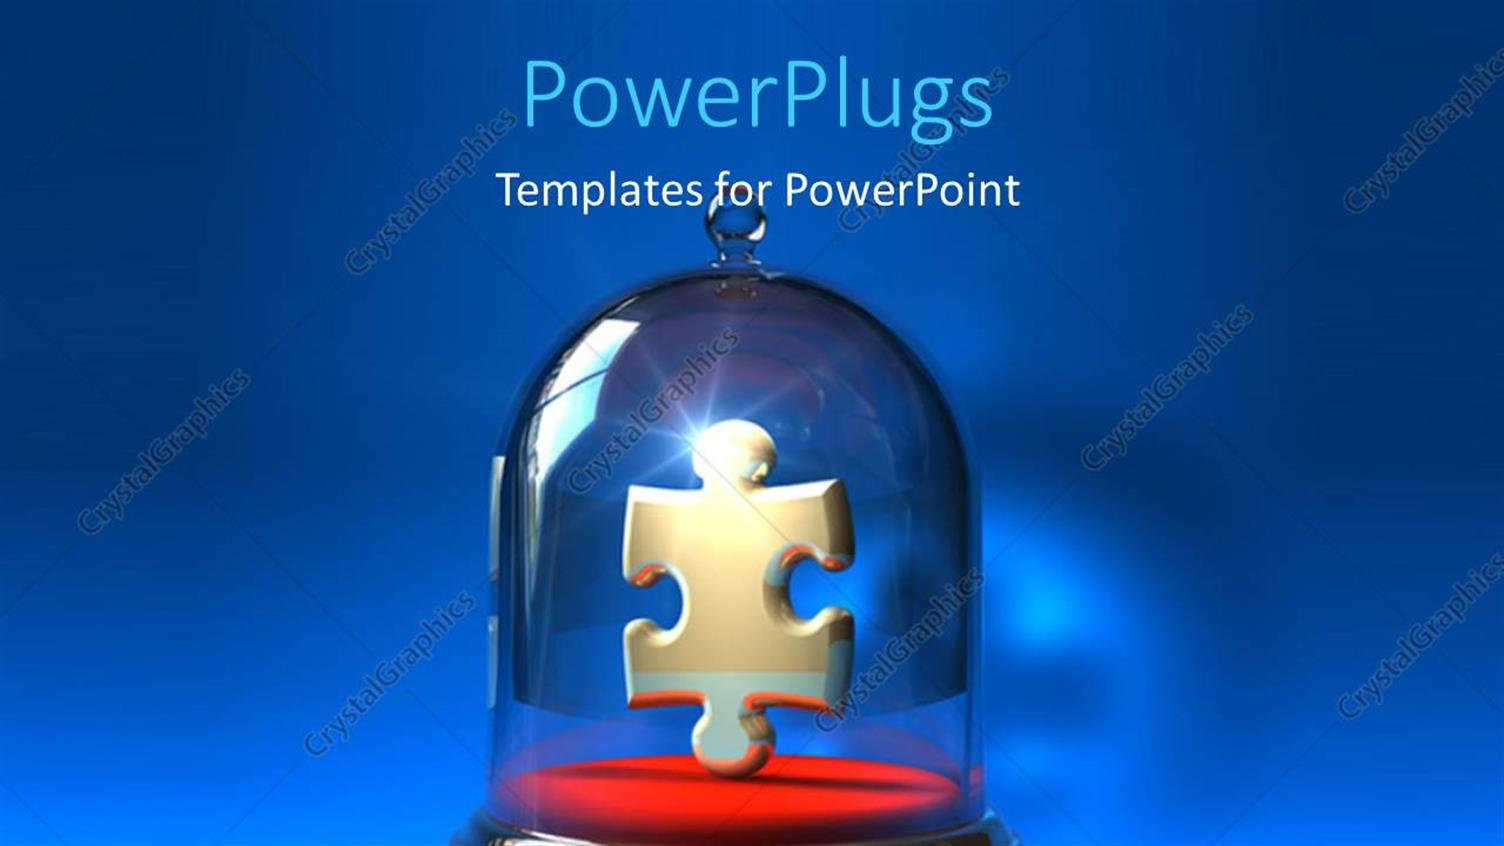 PowerPoint Template Displaying Jigsaw Puzzle Piece in Precision Container Over Blue Background